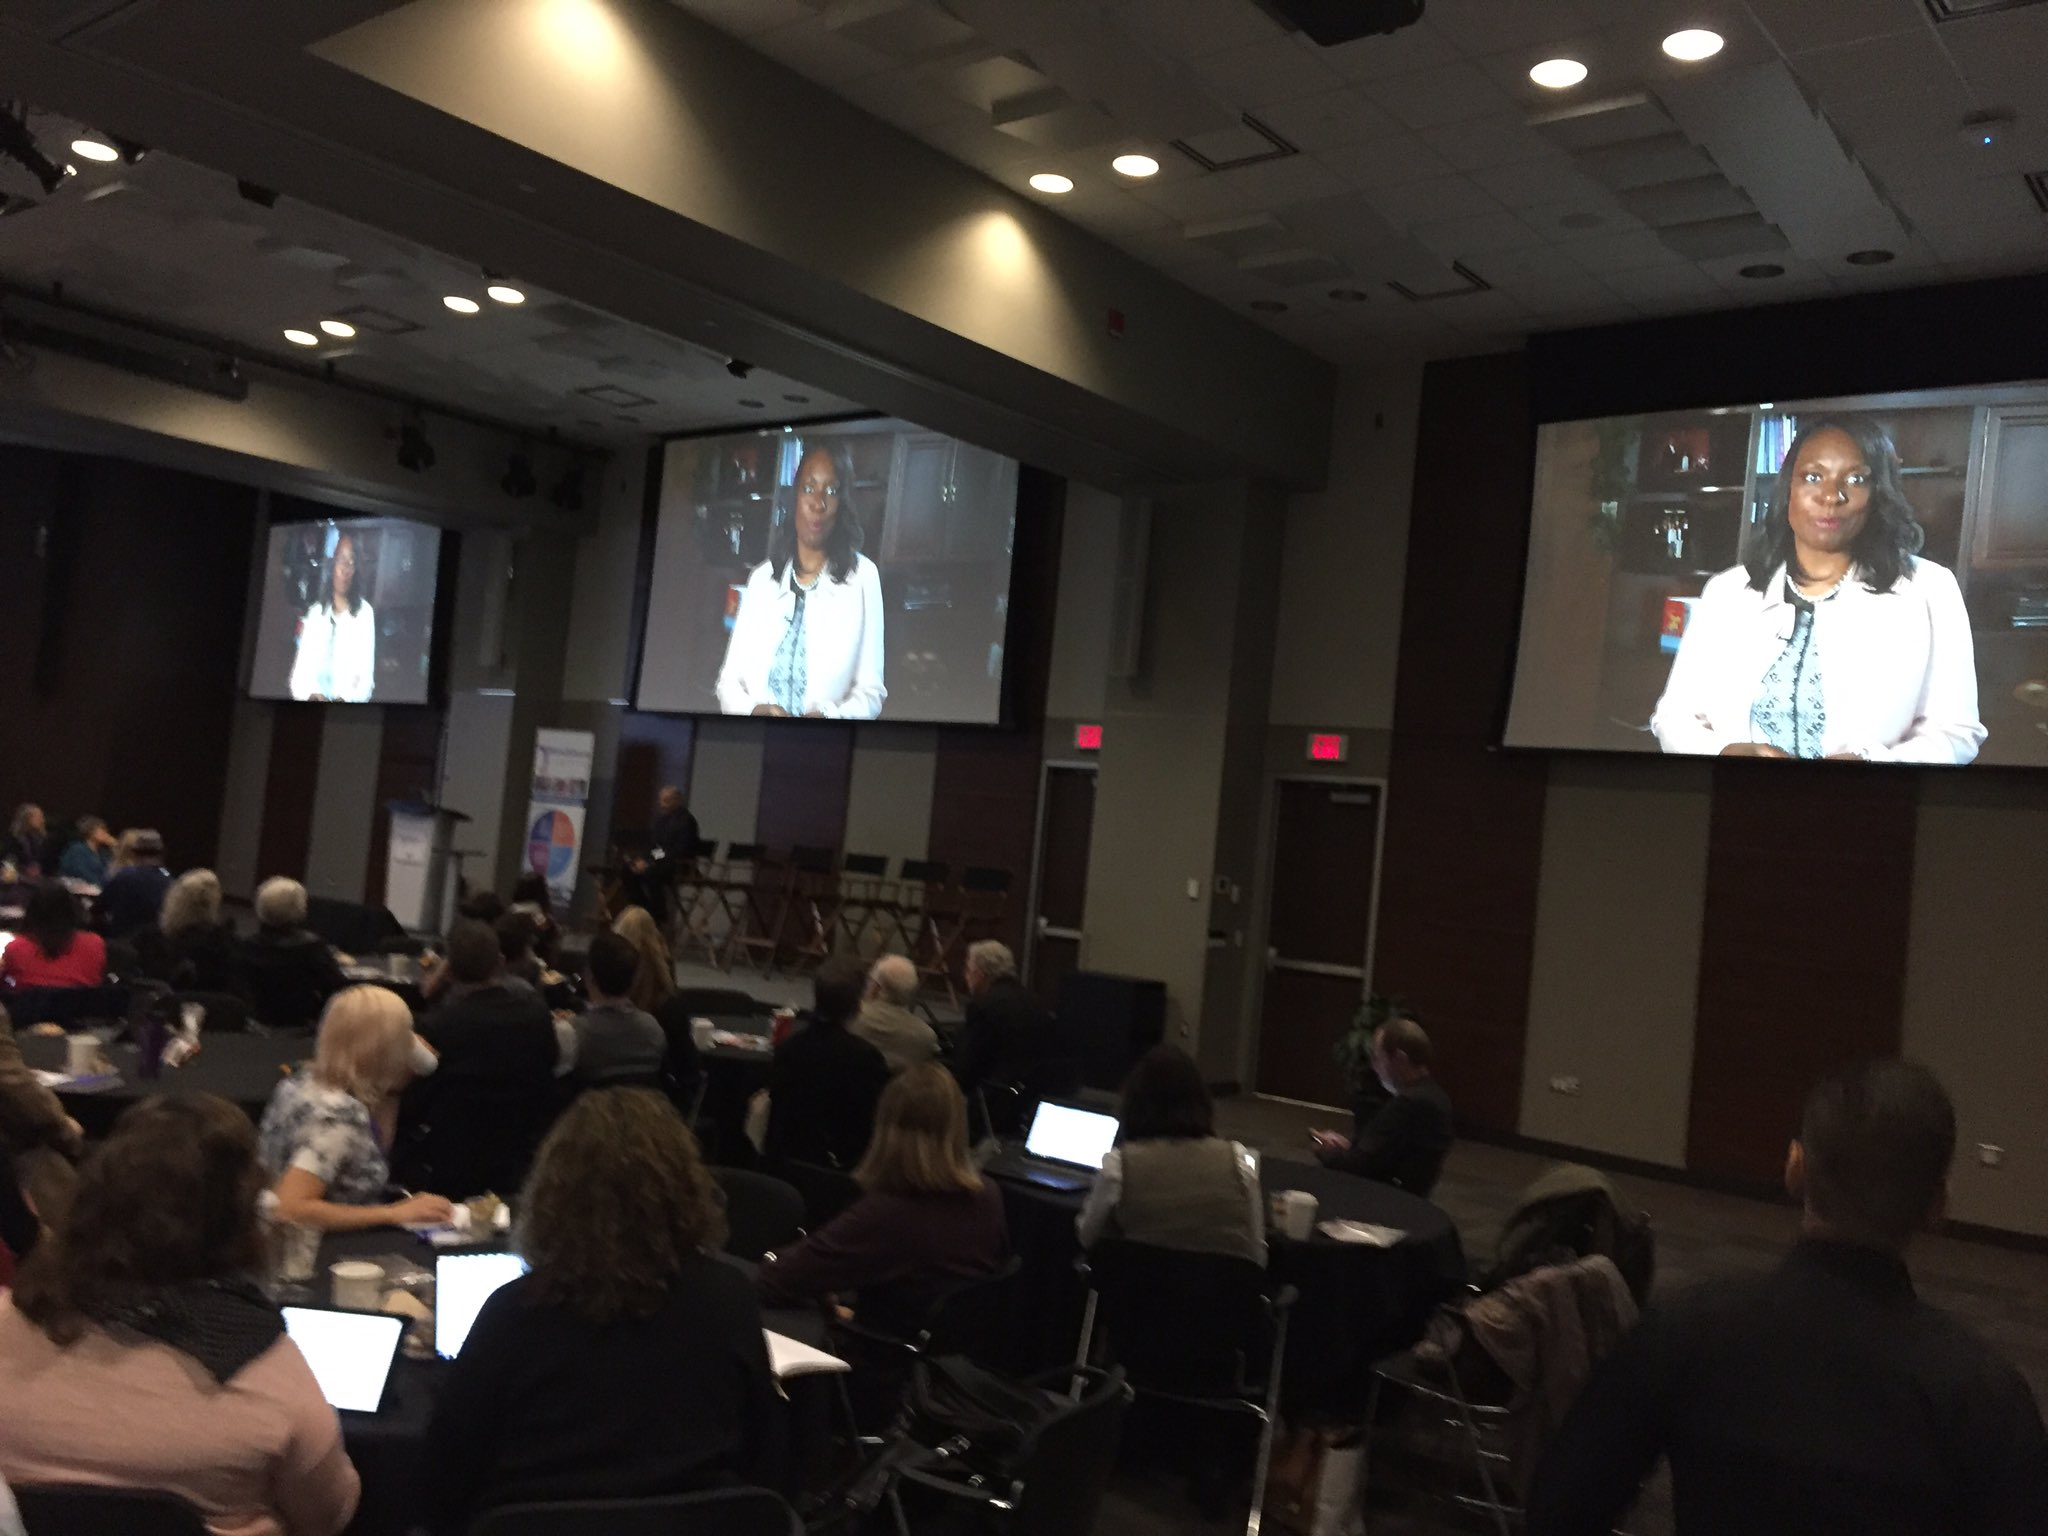 Opening remarks #cdnedtech16 from Ontario Minister of Education Mitzie Hunter https://t.co/PcstbWUobl